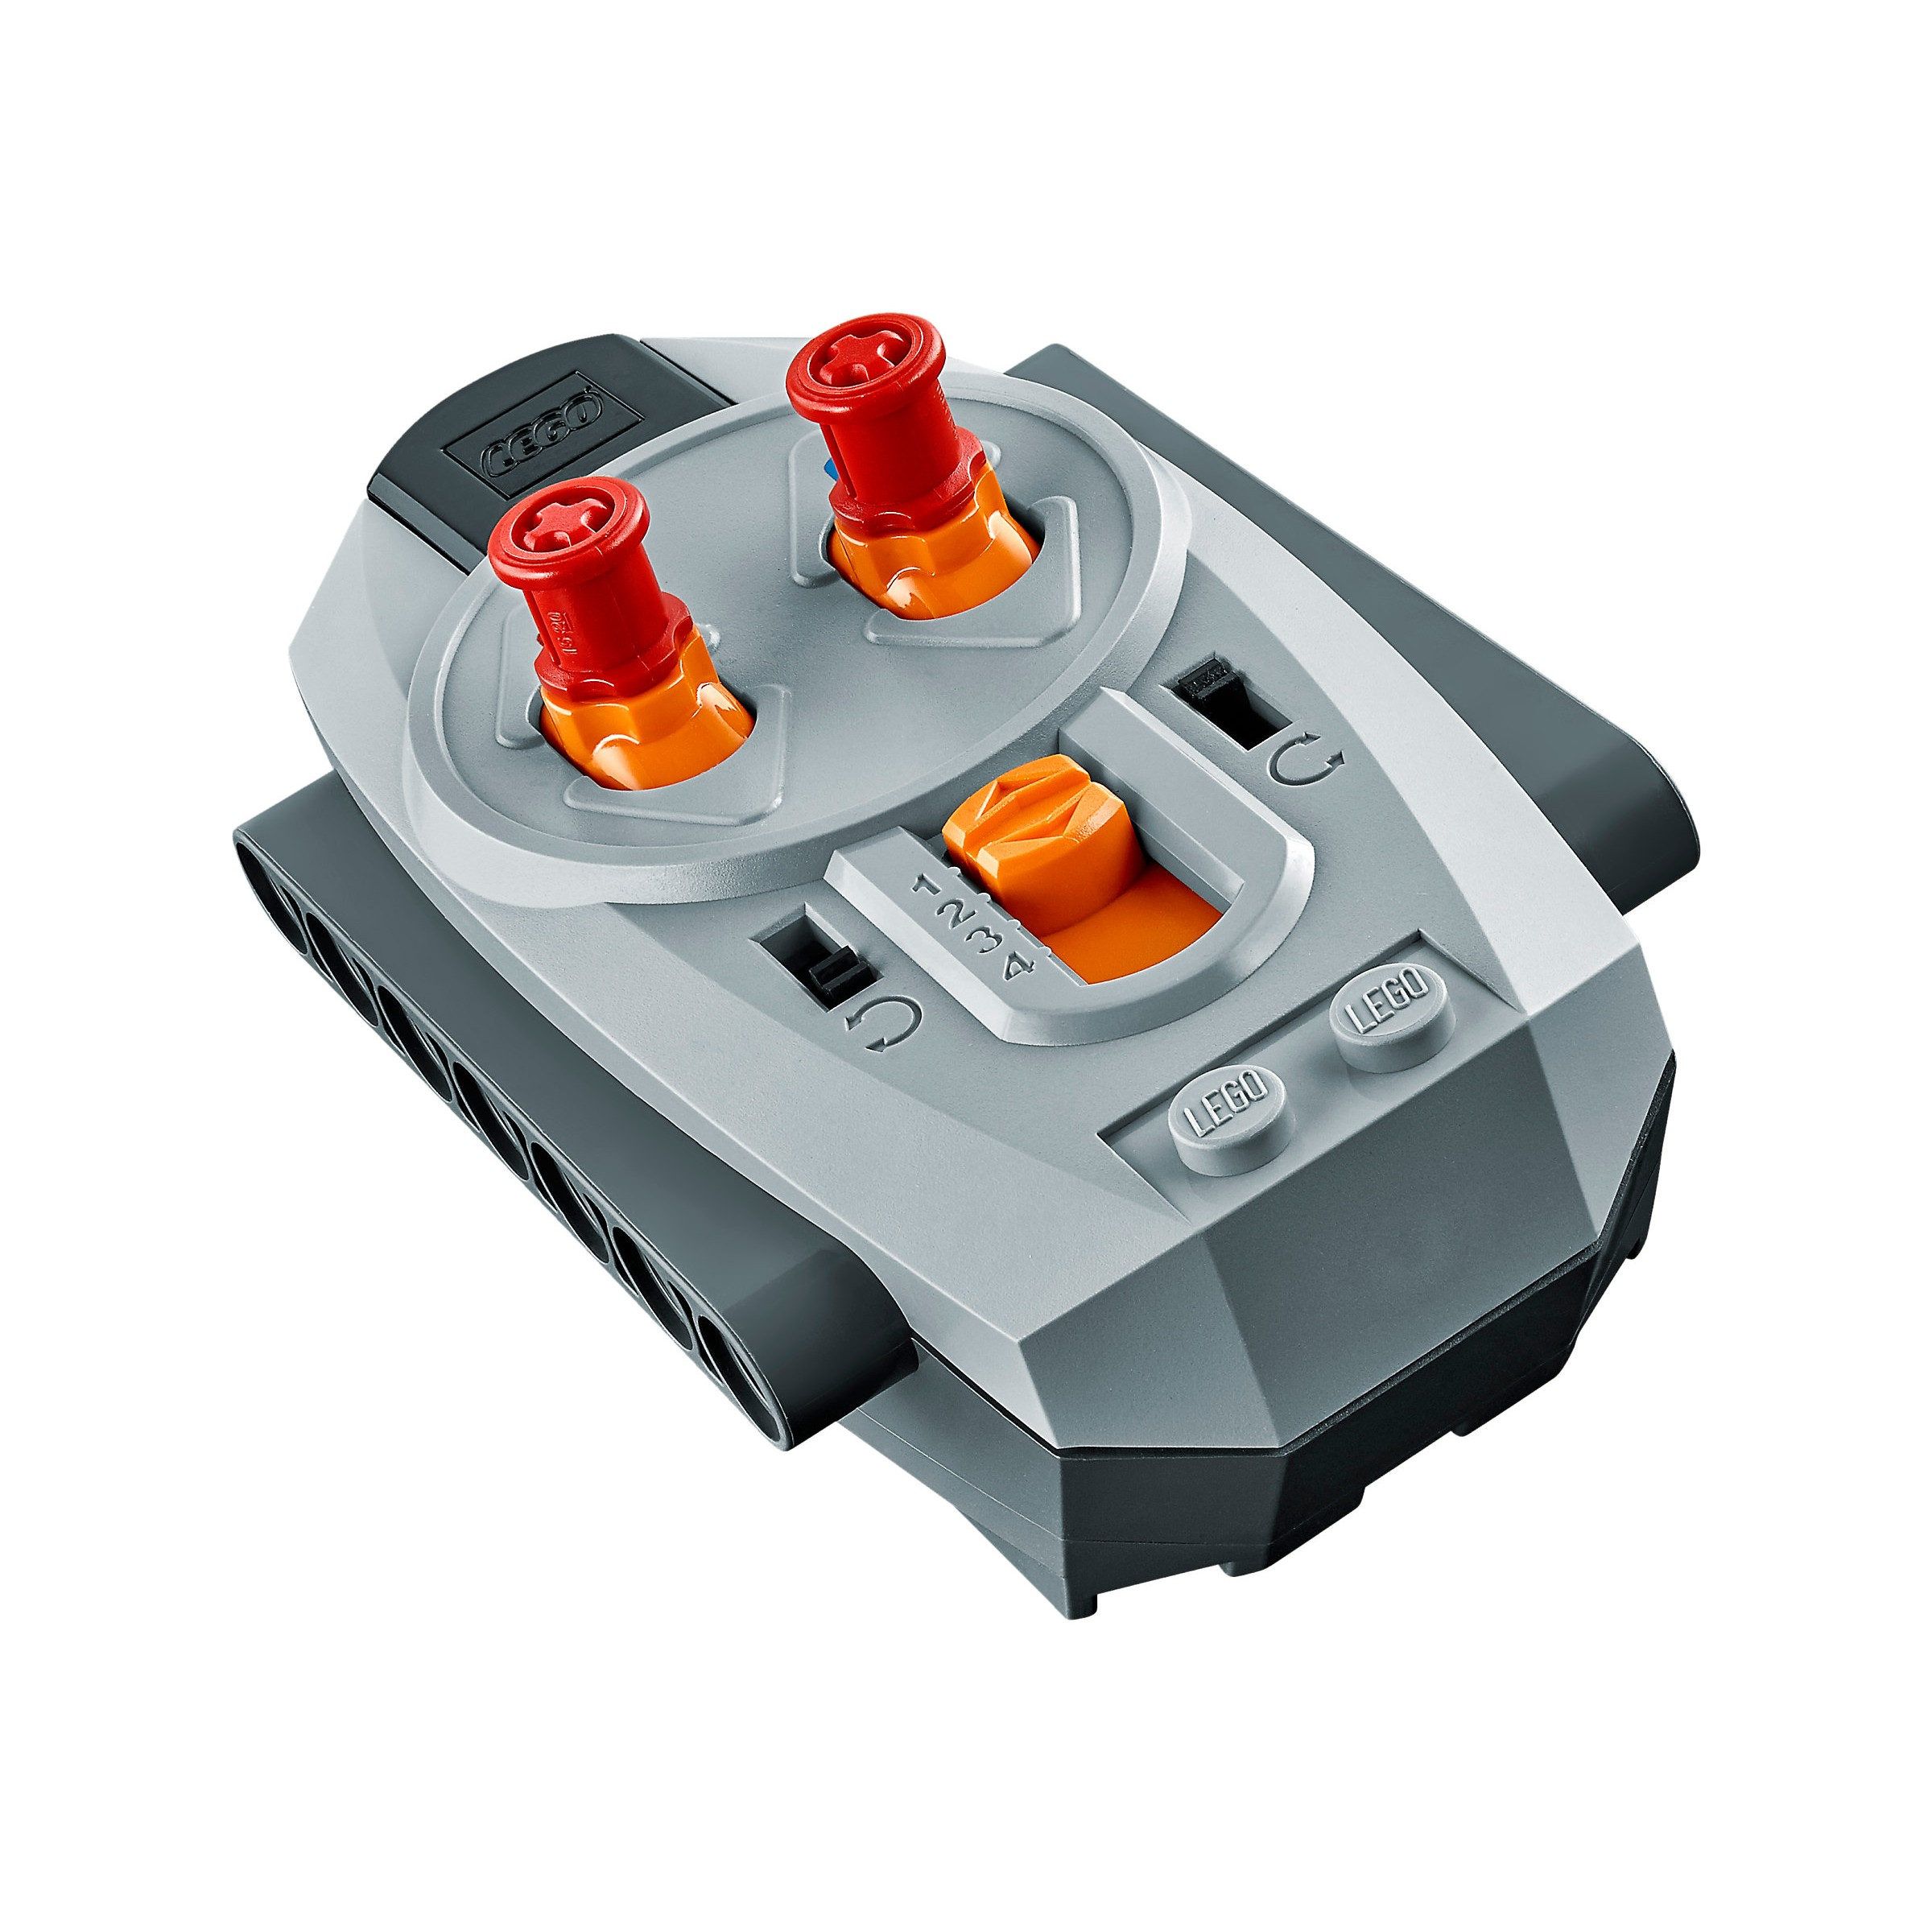 how to turn on lego remote control